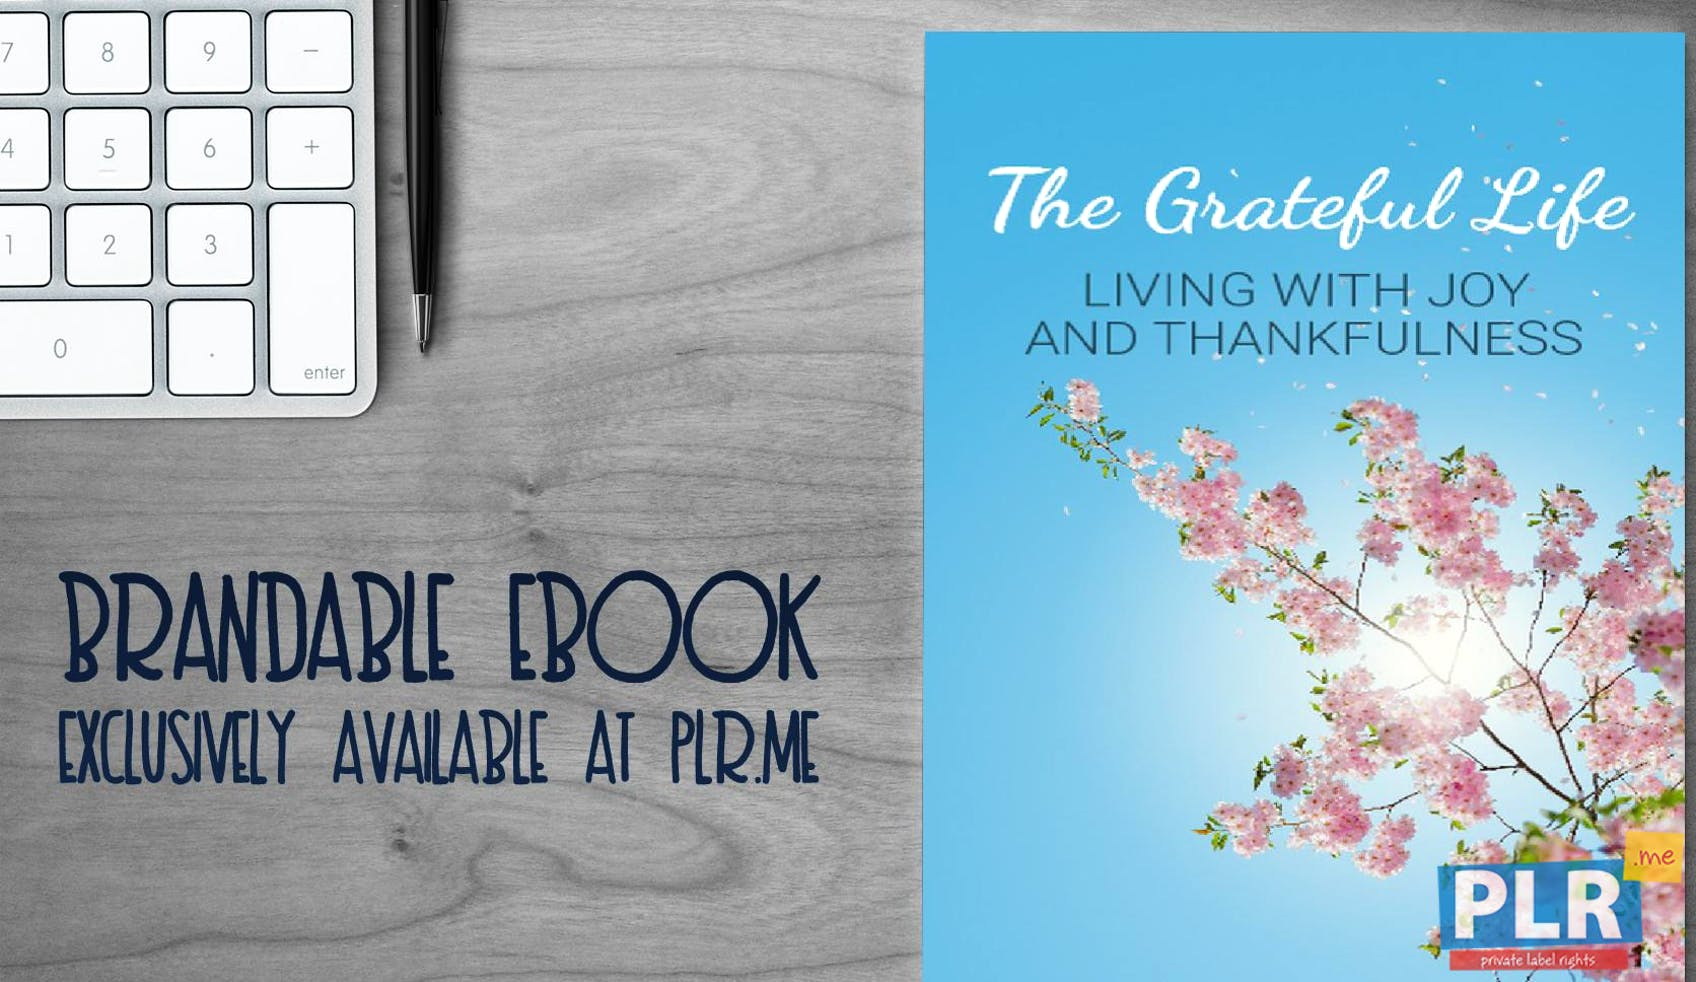 The Grateful Life - Living With Joy And Thankfulness